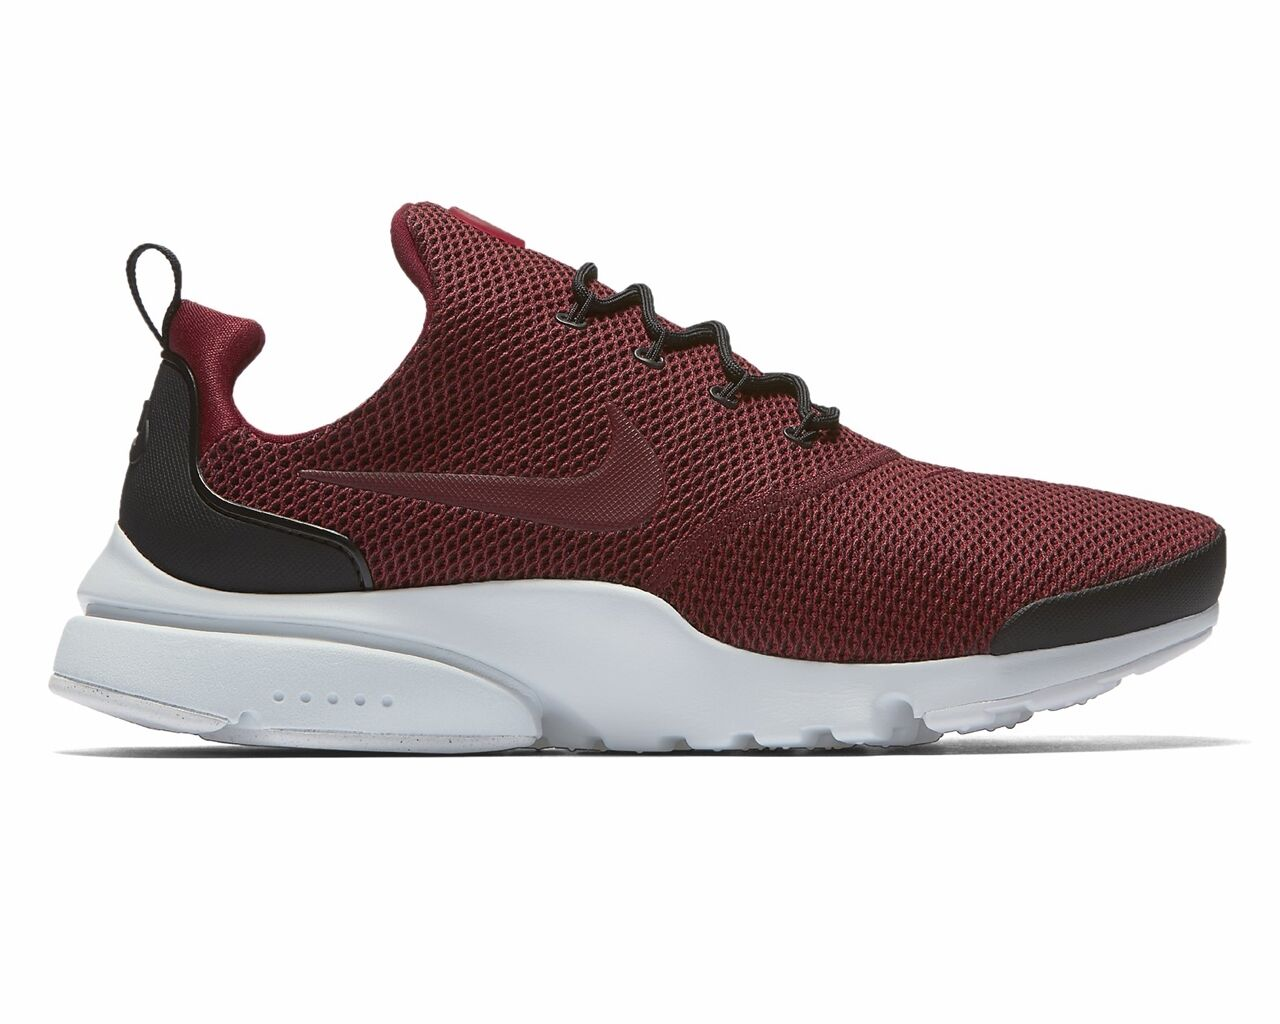 Sale Nike PRESTO FLY SE 908020 003 Mens Trainers Red Black Gym Shoes